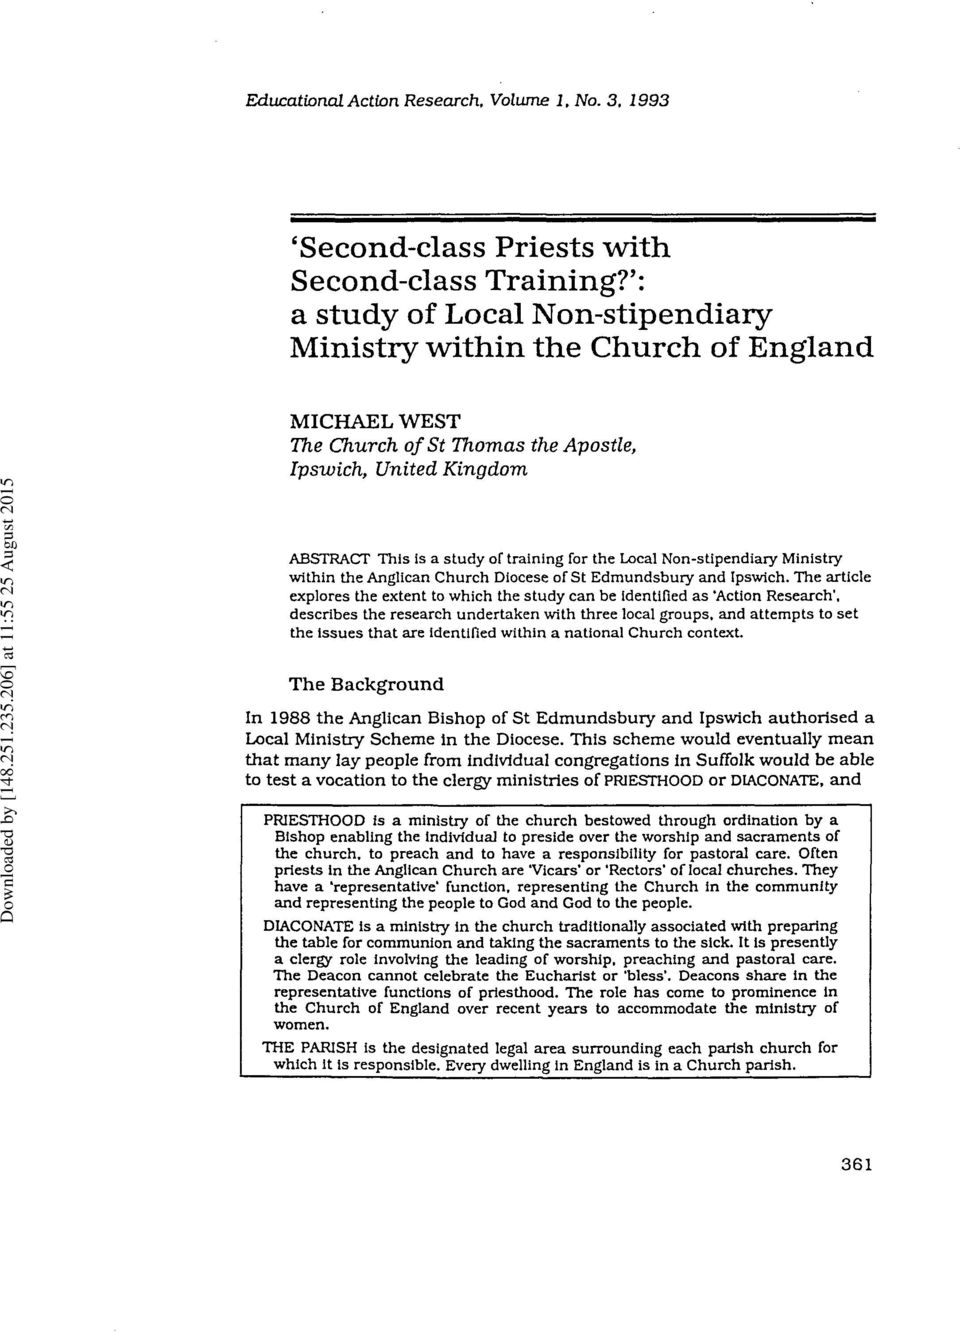 Non-stipendiary Ministry within the Anglican Church Diocese of St Edmundsbury and Ipswich.